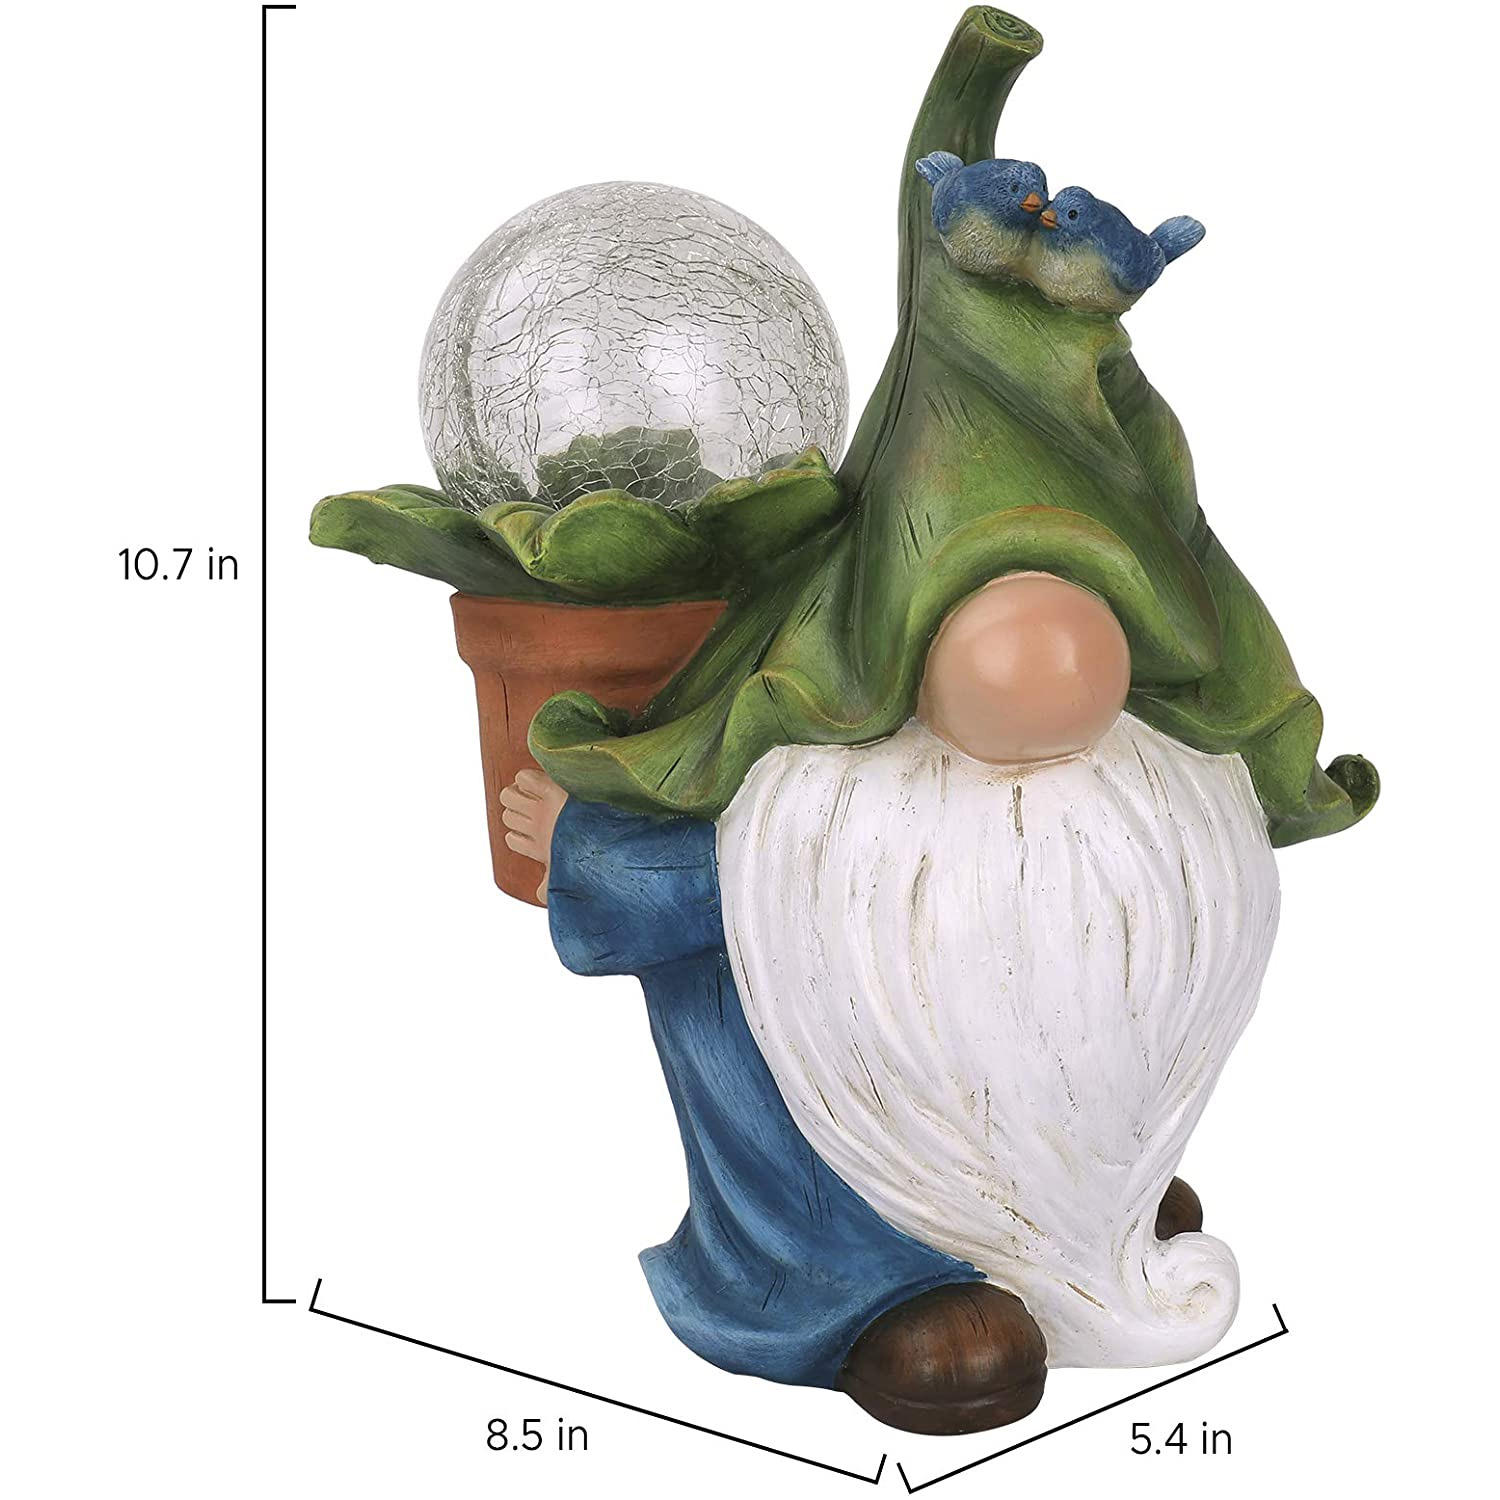 Garden Gnome Statue Ornament- Resin Gnome Figurine With Solar LED Lights Outdoor Christmas Decorations For Patio Yard Lawn